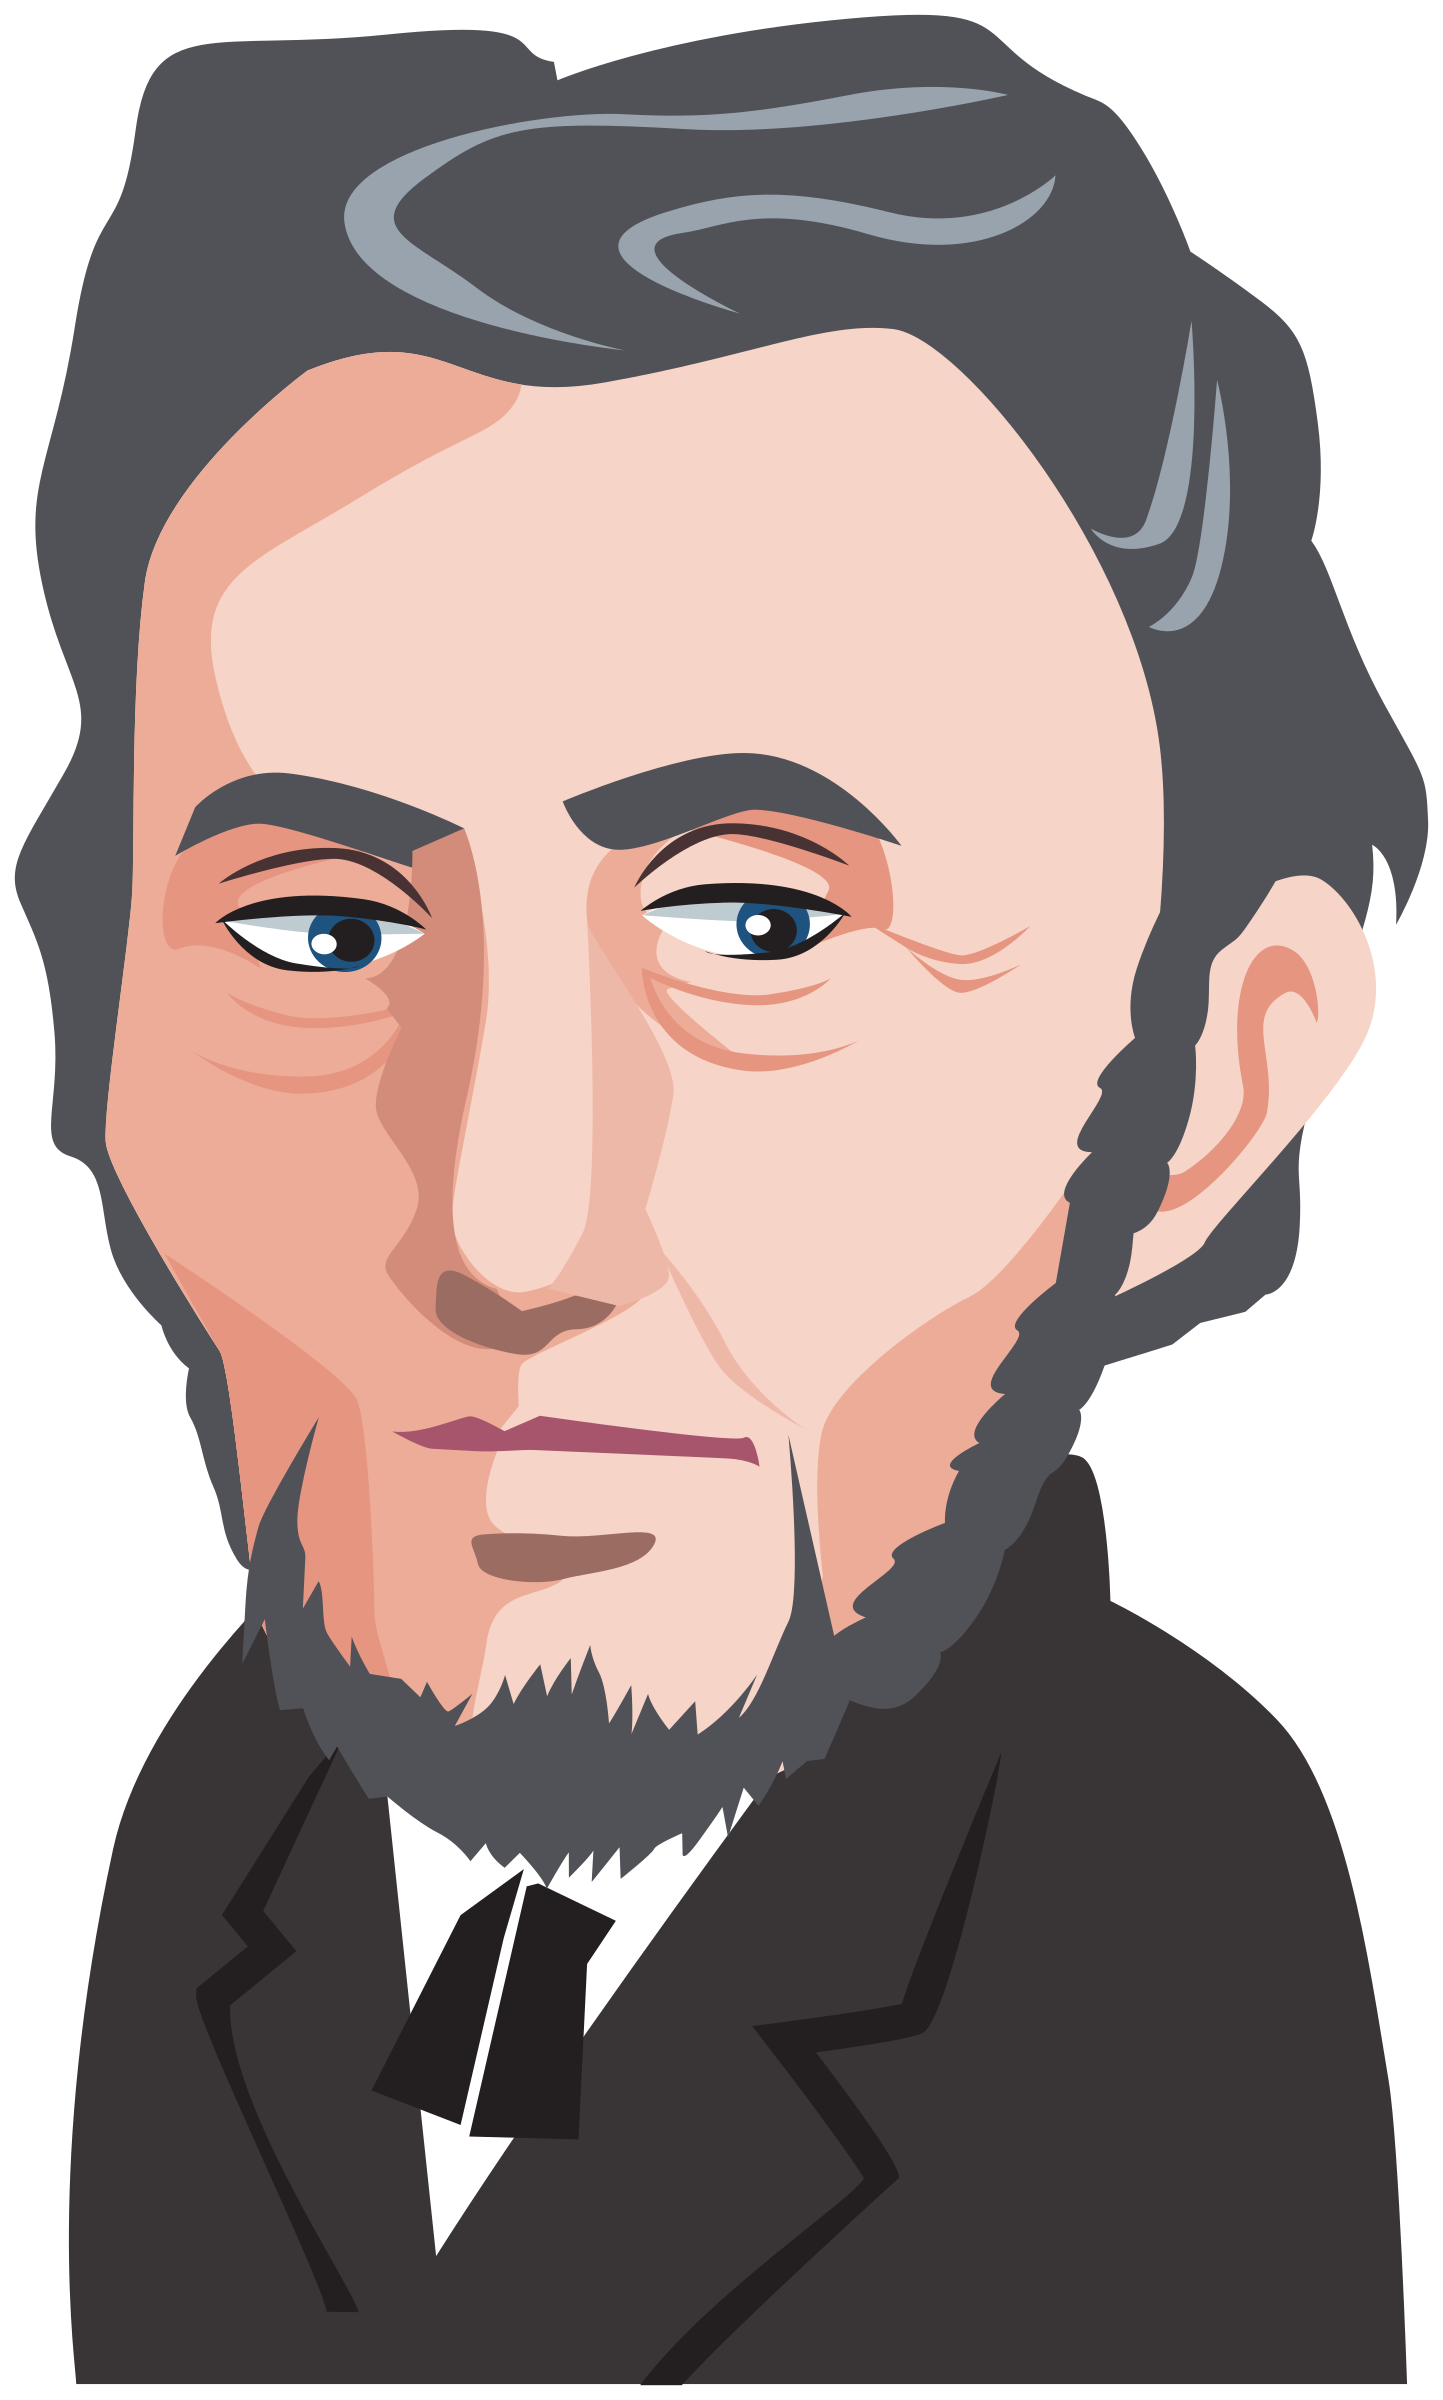 svg transparent download Polititian big image png. Abraham lincoln clipart step by step